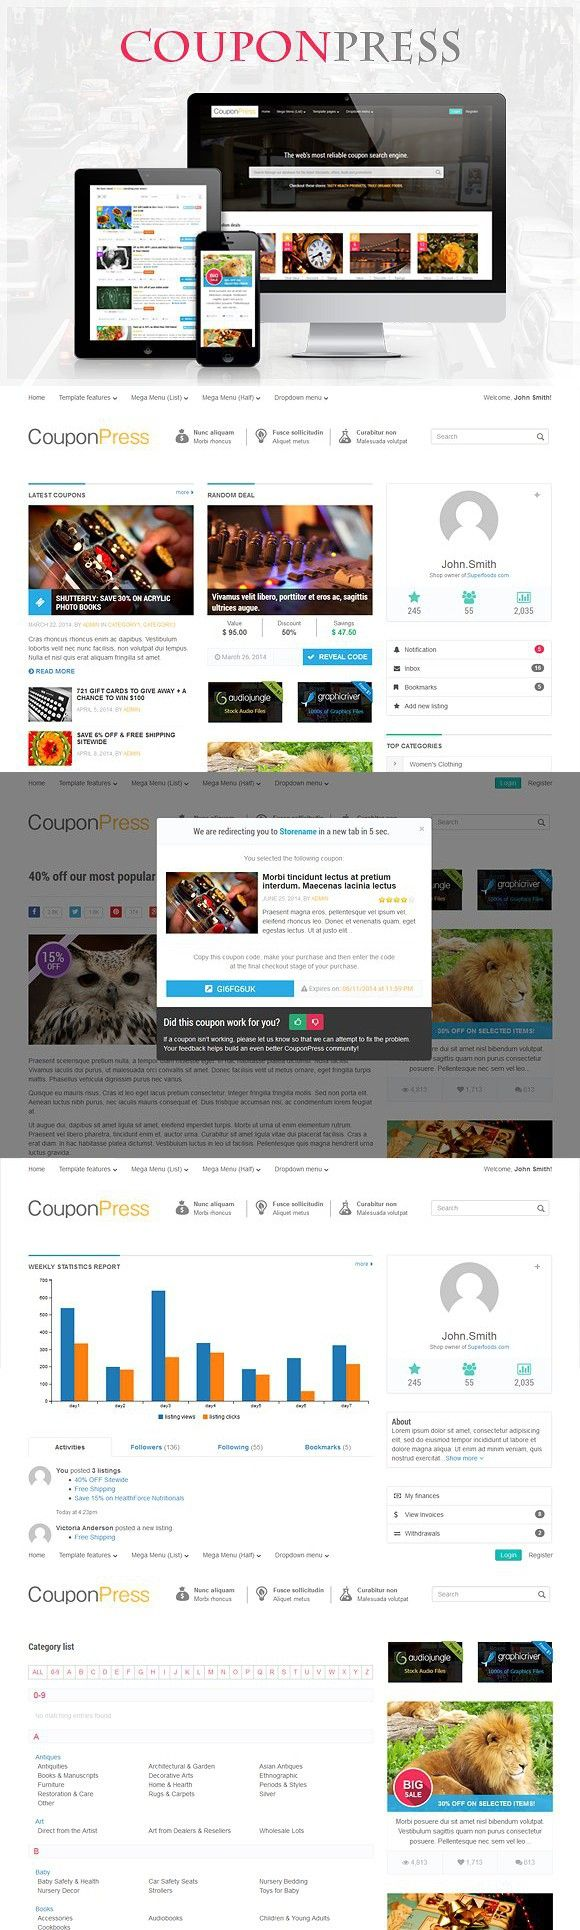 Couponpress Html Html5 Templates Bootstrap Template Html Css